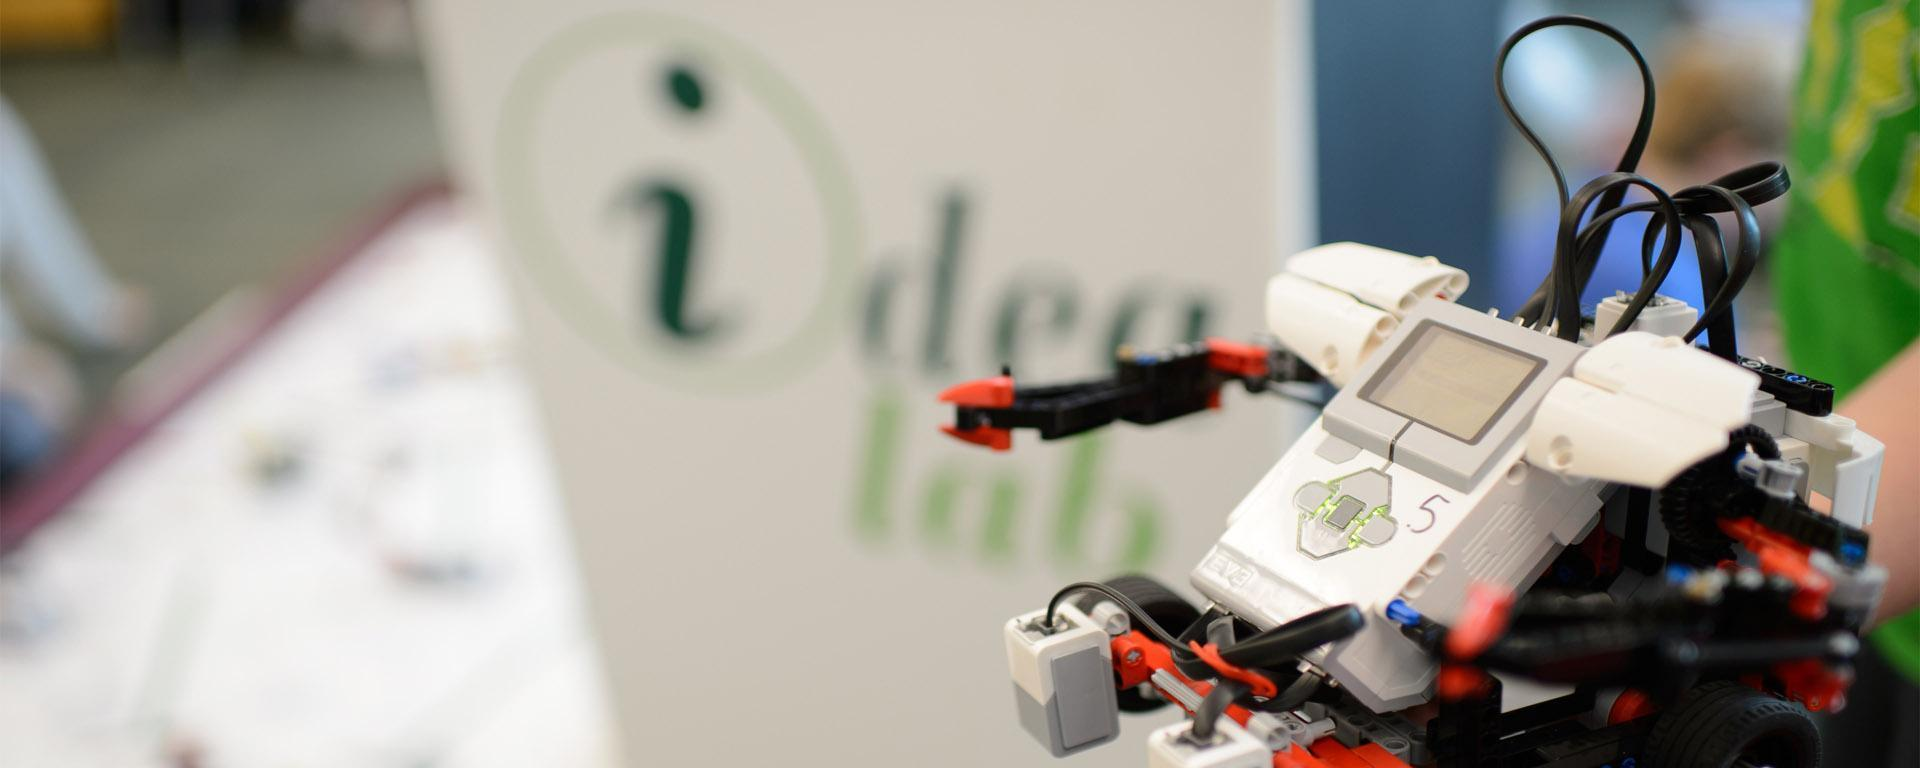 Image of a robot in front of the idea lab podium